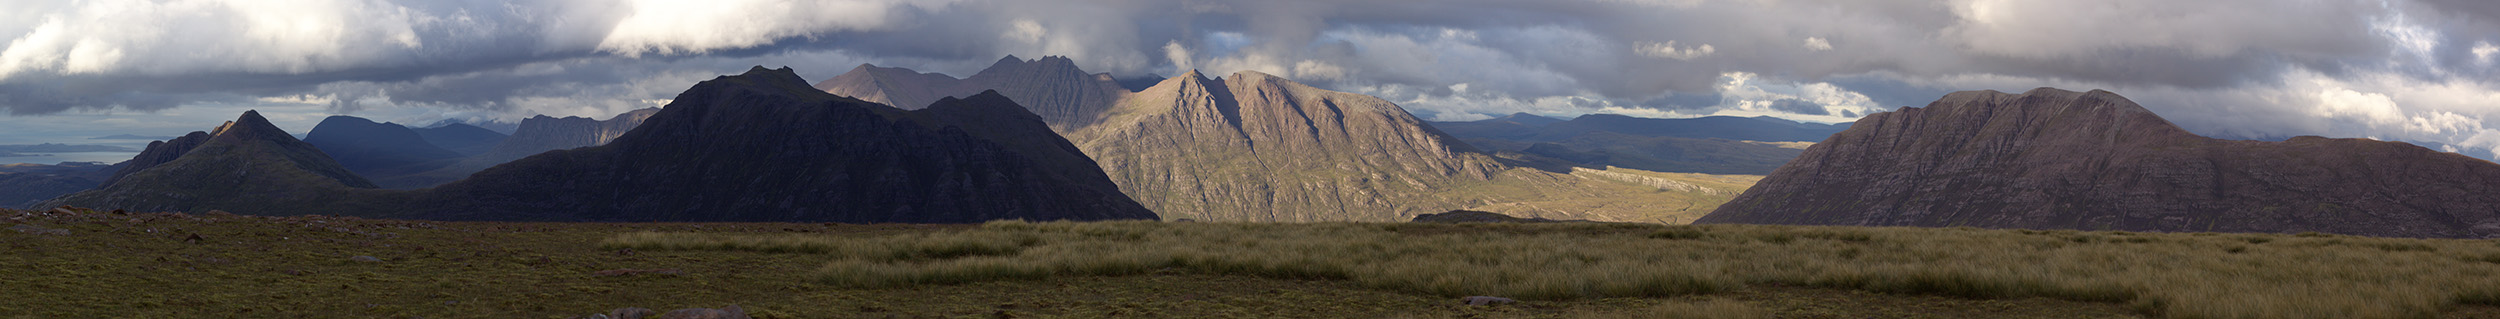 Evening light over An Teallach and Beinn Dearg Mhor